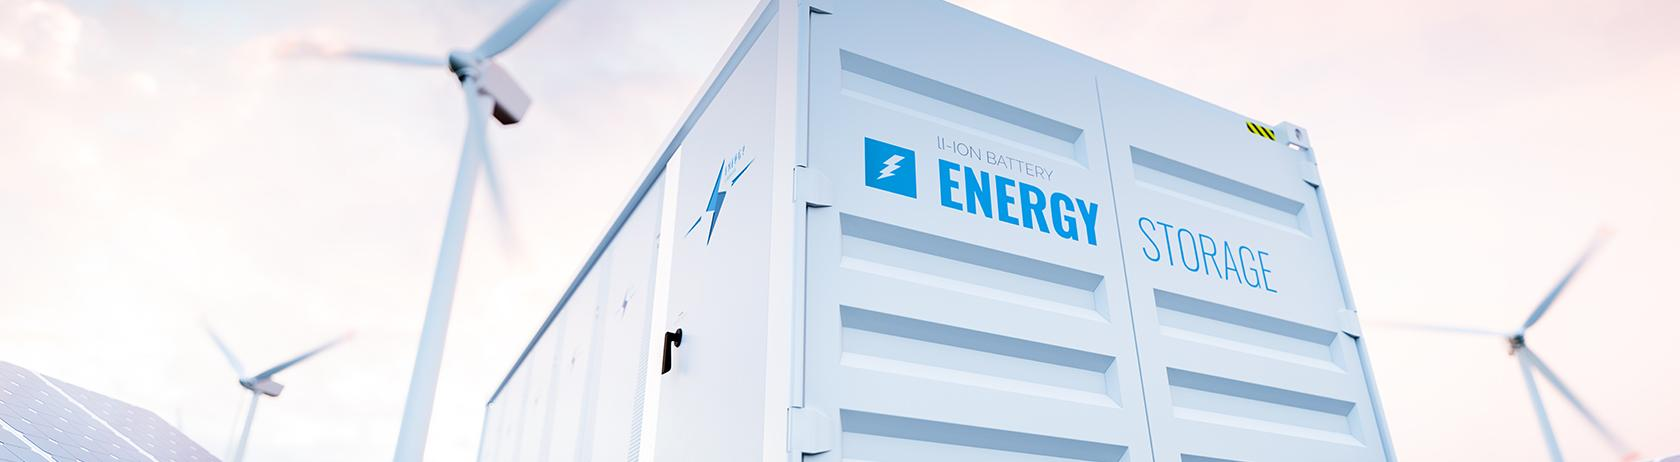 Battery energy storage systems and containers